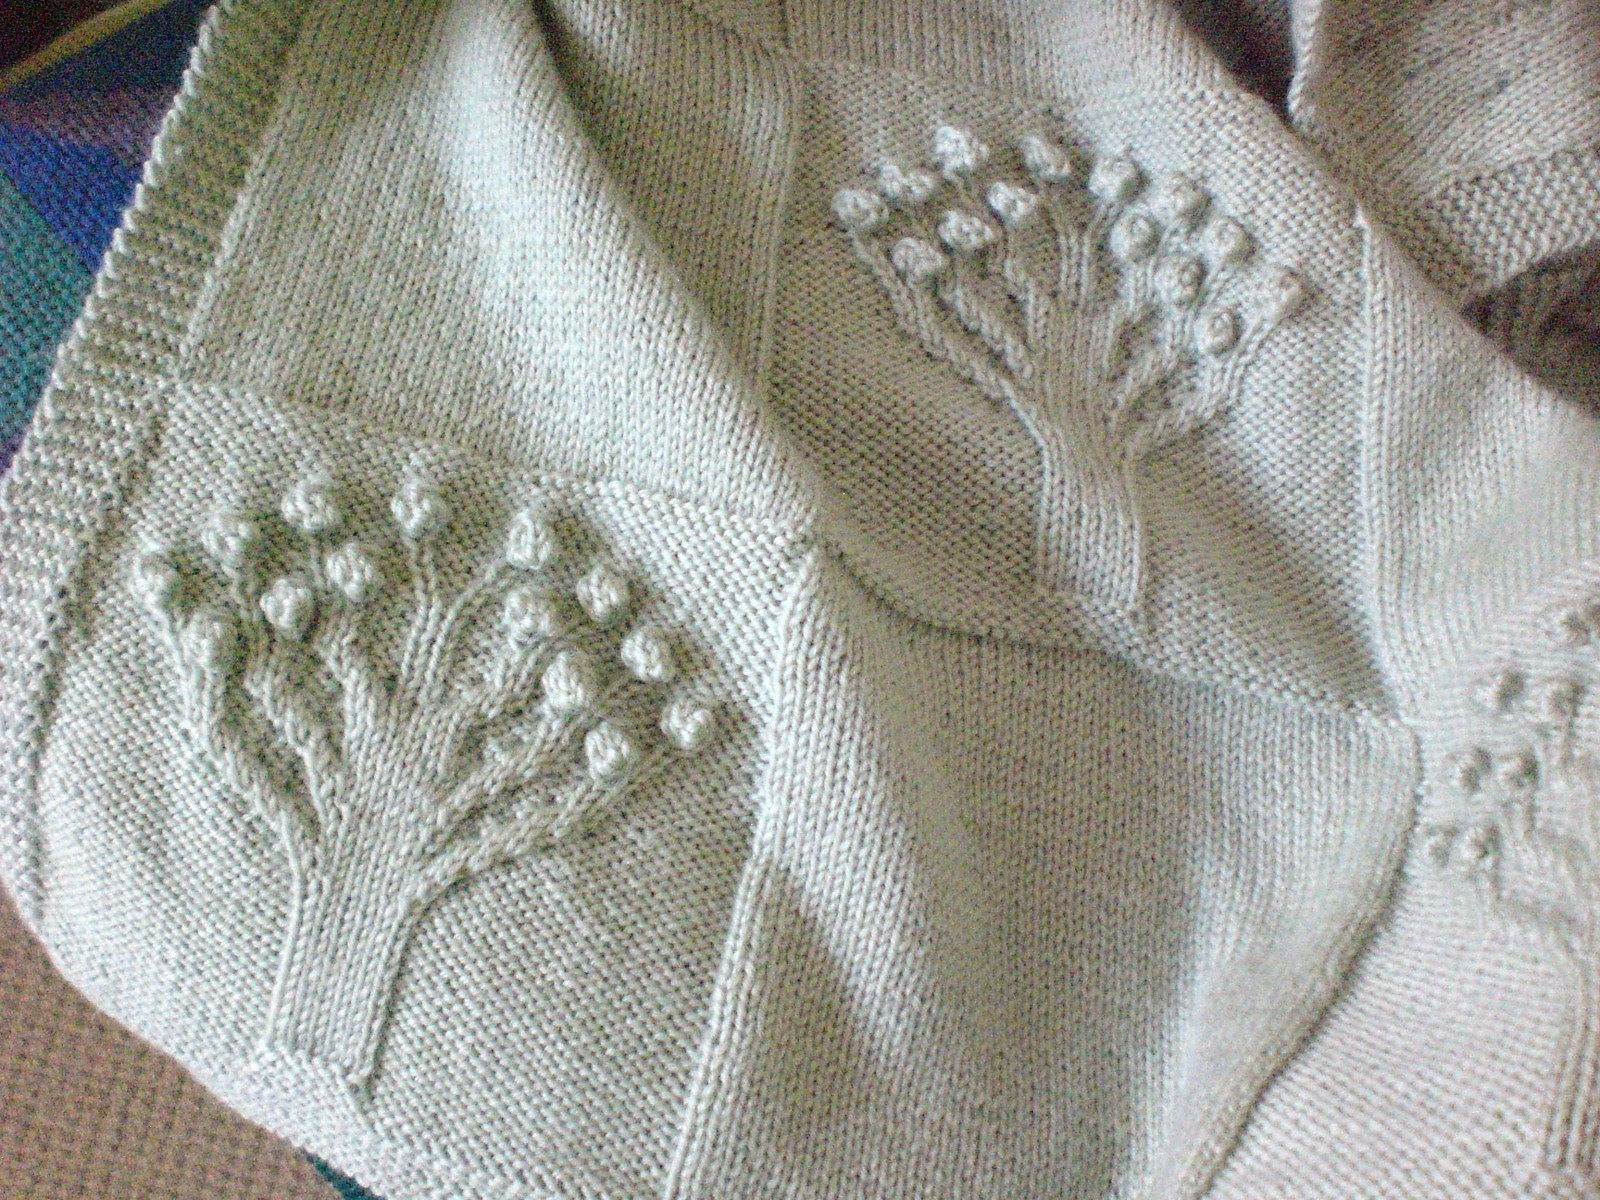 Fionas Knitting: Apple Tree Blanket